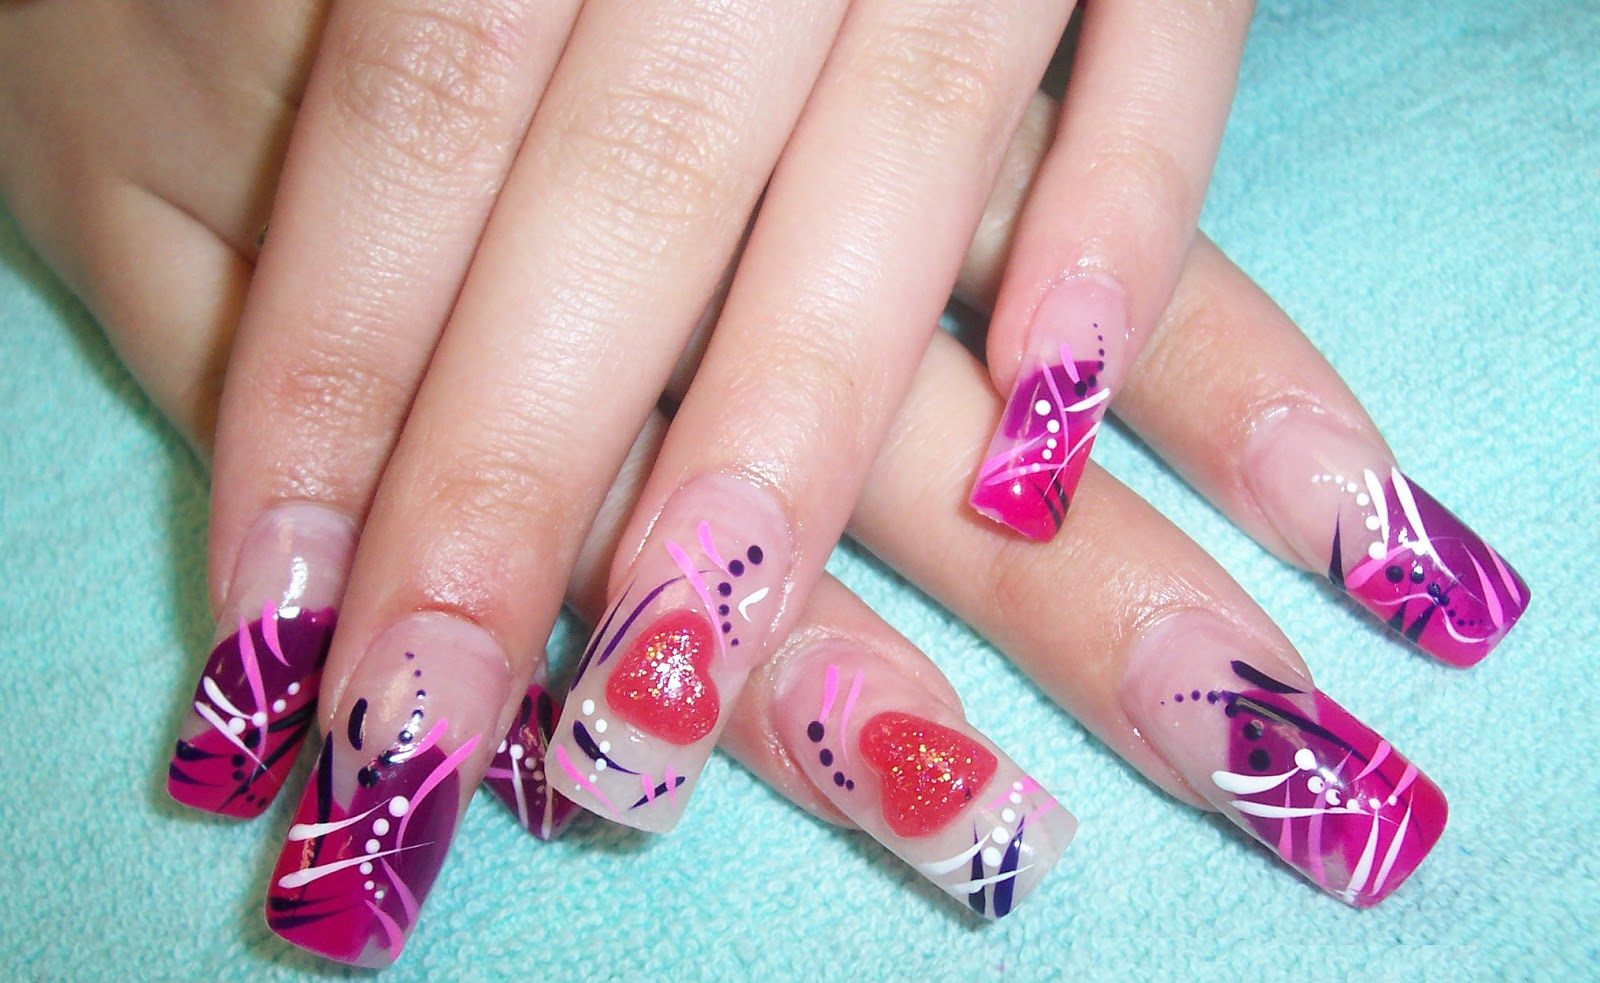 VALENTINEu0027S DAY NAIL ART DESIGN ...